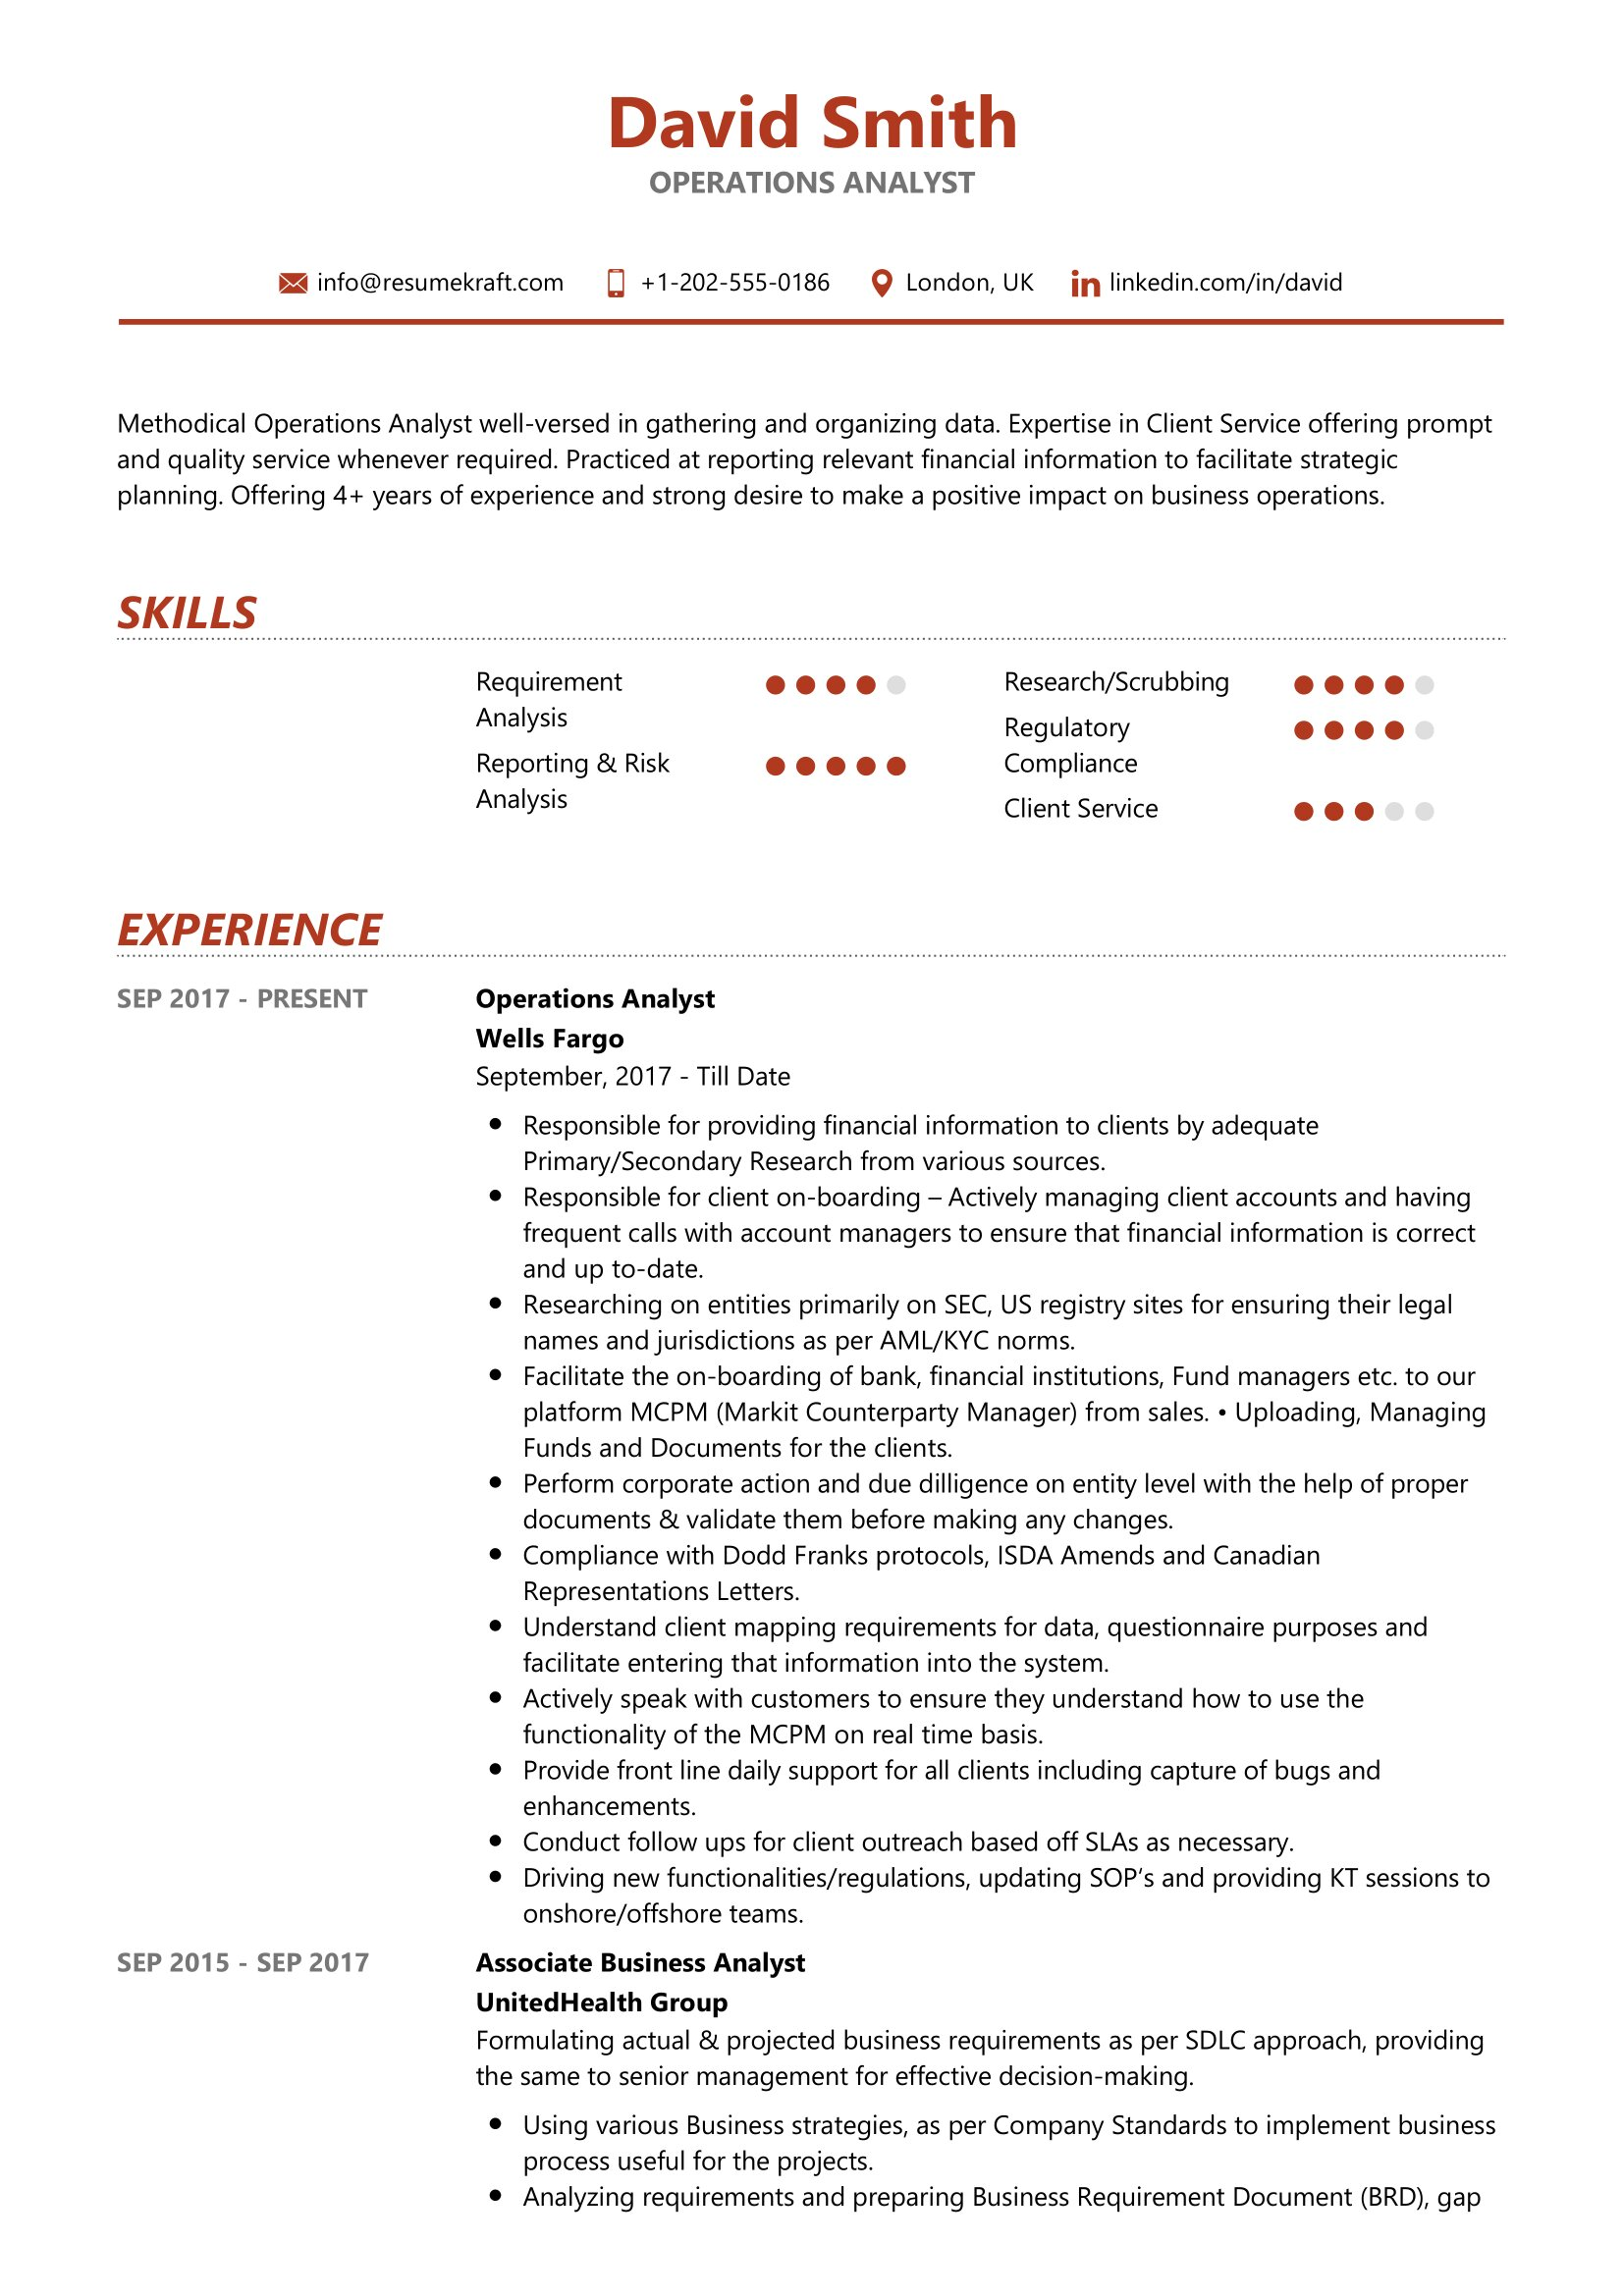 operations analyst resume sample resumekraft kyc example free templates for mac paper and Resume Kyc Analyst Resume Example